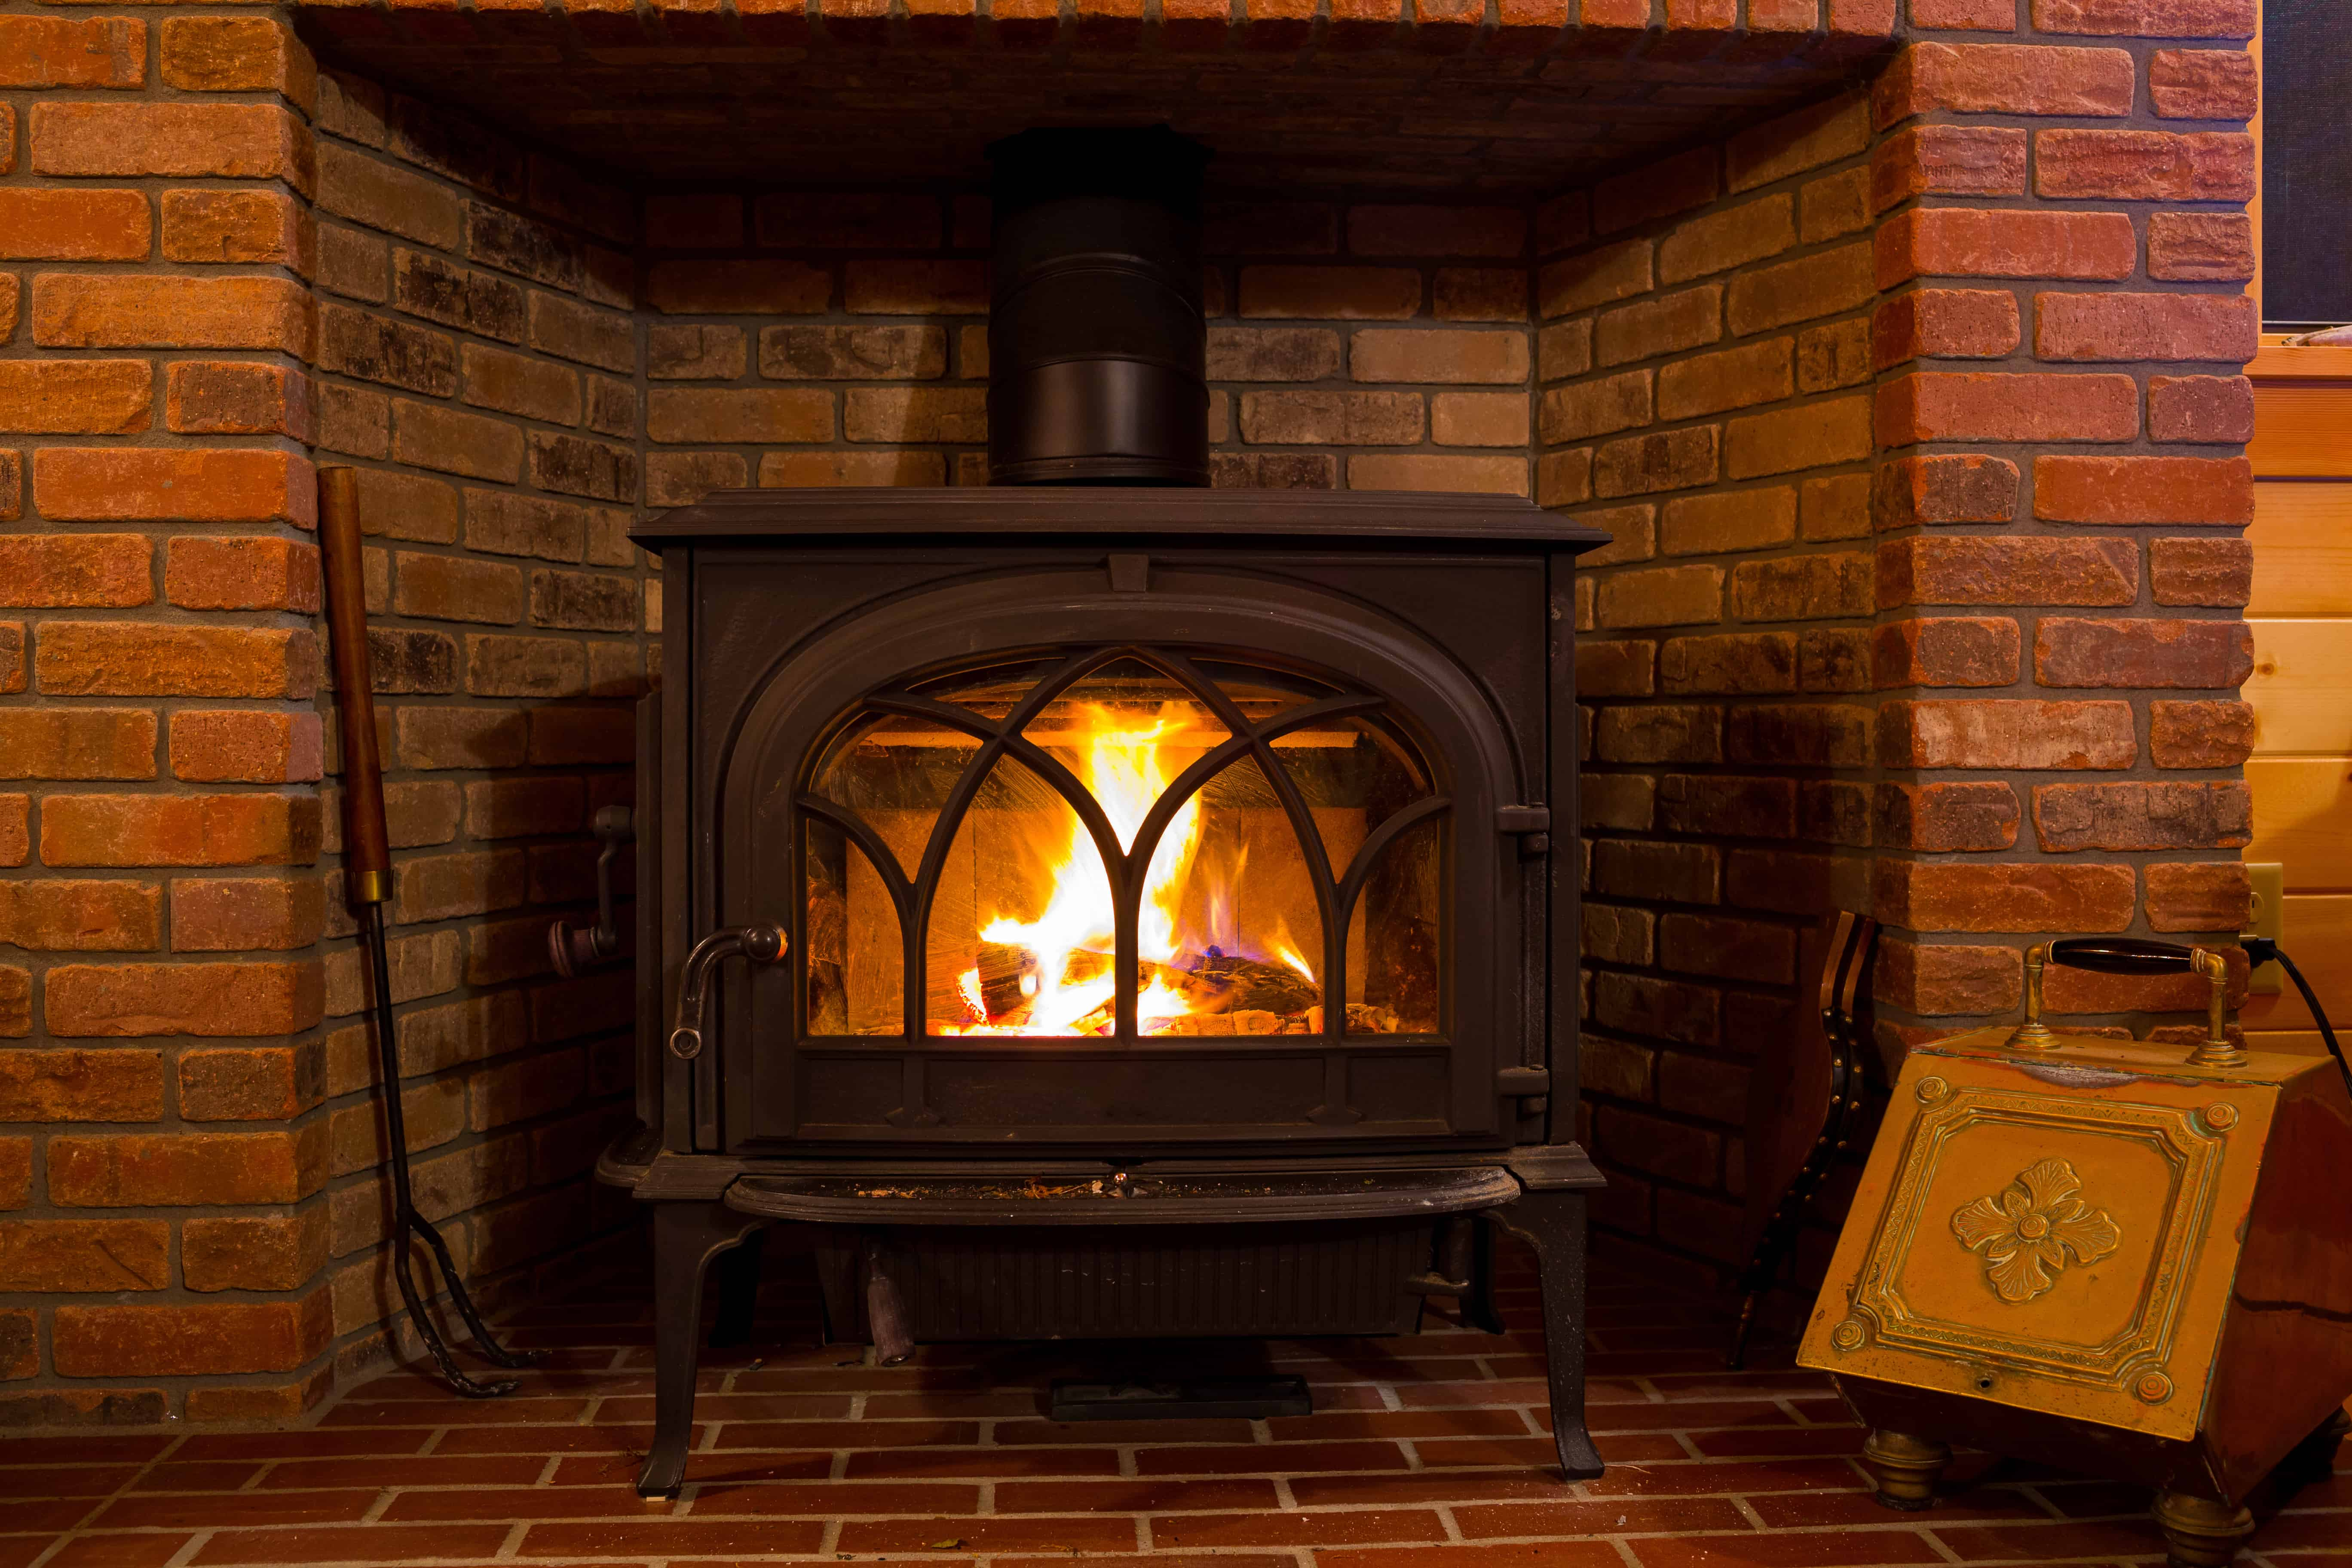 Fireplace Vs Wood Burning Stove For A Cabin Outdoor Troop